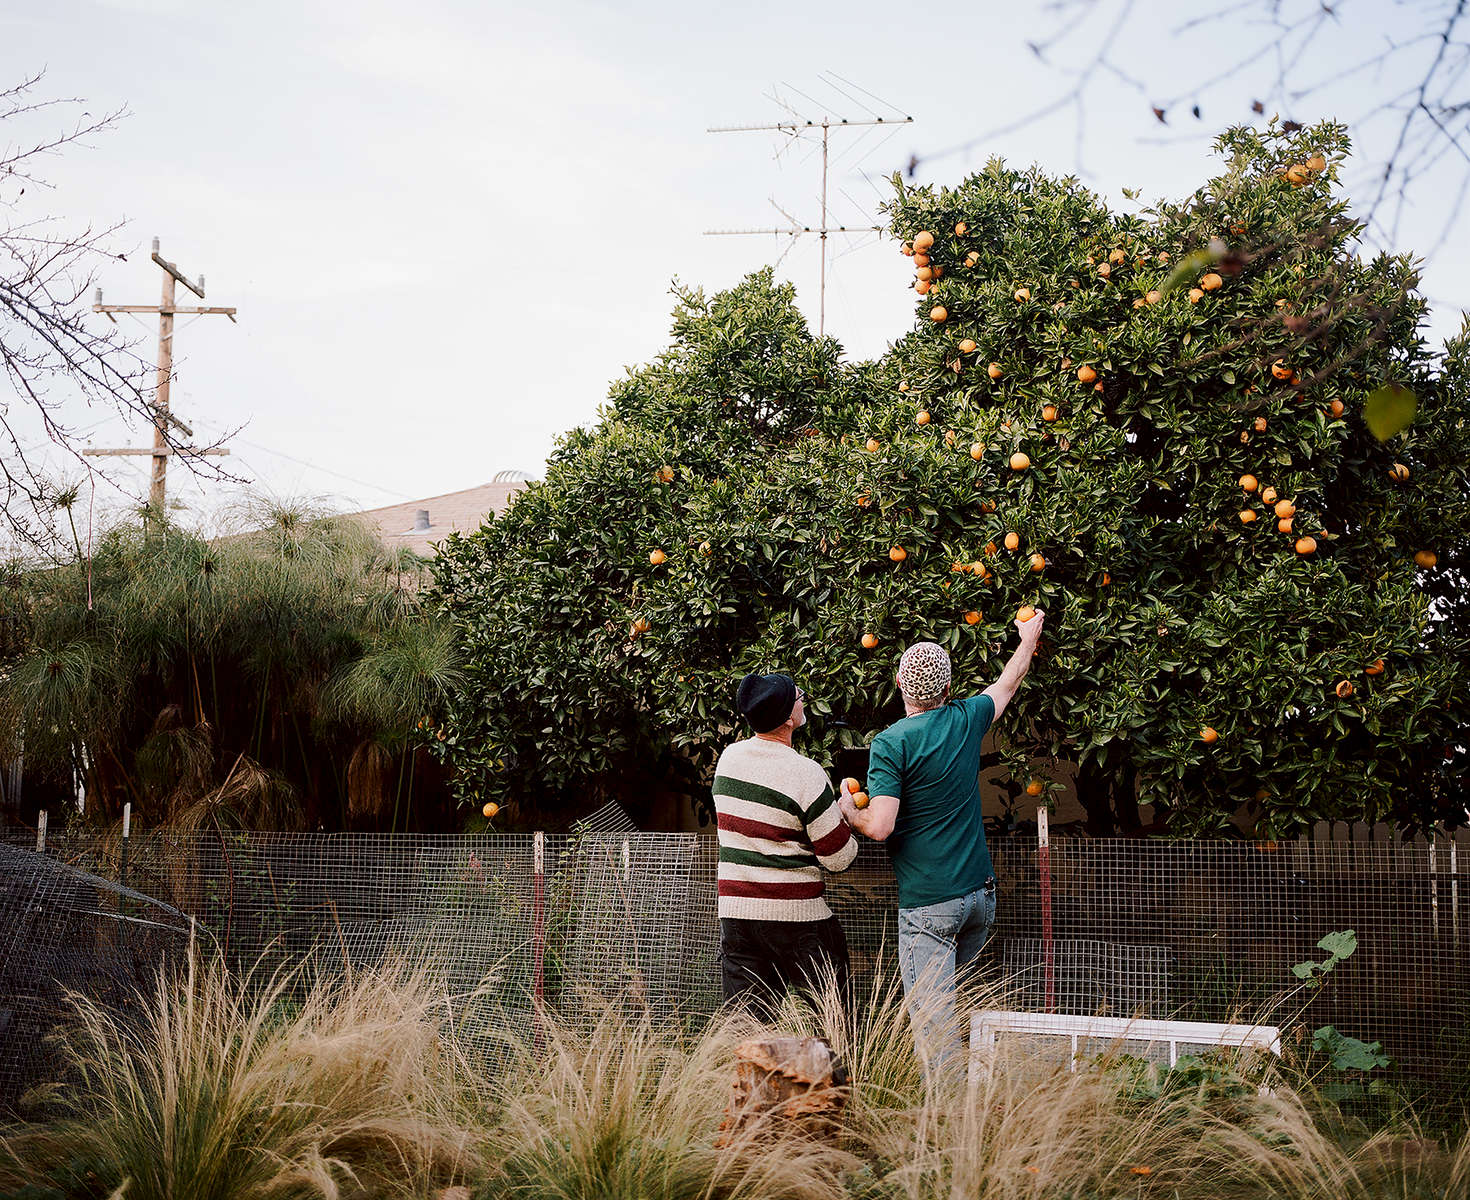 Ralph Thurlow, left, and David Spiher pick oranges in their back yard in Hayward, Calif. on December 4, 2016. The couple has been facing Ralph's health challenges around HIV-Associated Neurocognitive Disorder. The couple was part of the Chronicle's first feature film called Last Men Standing about long-term HIV survivors.